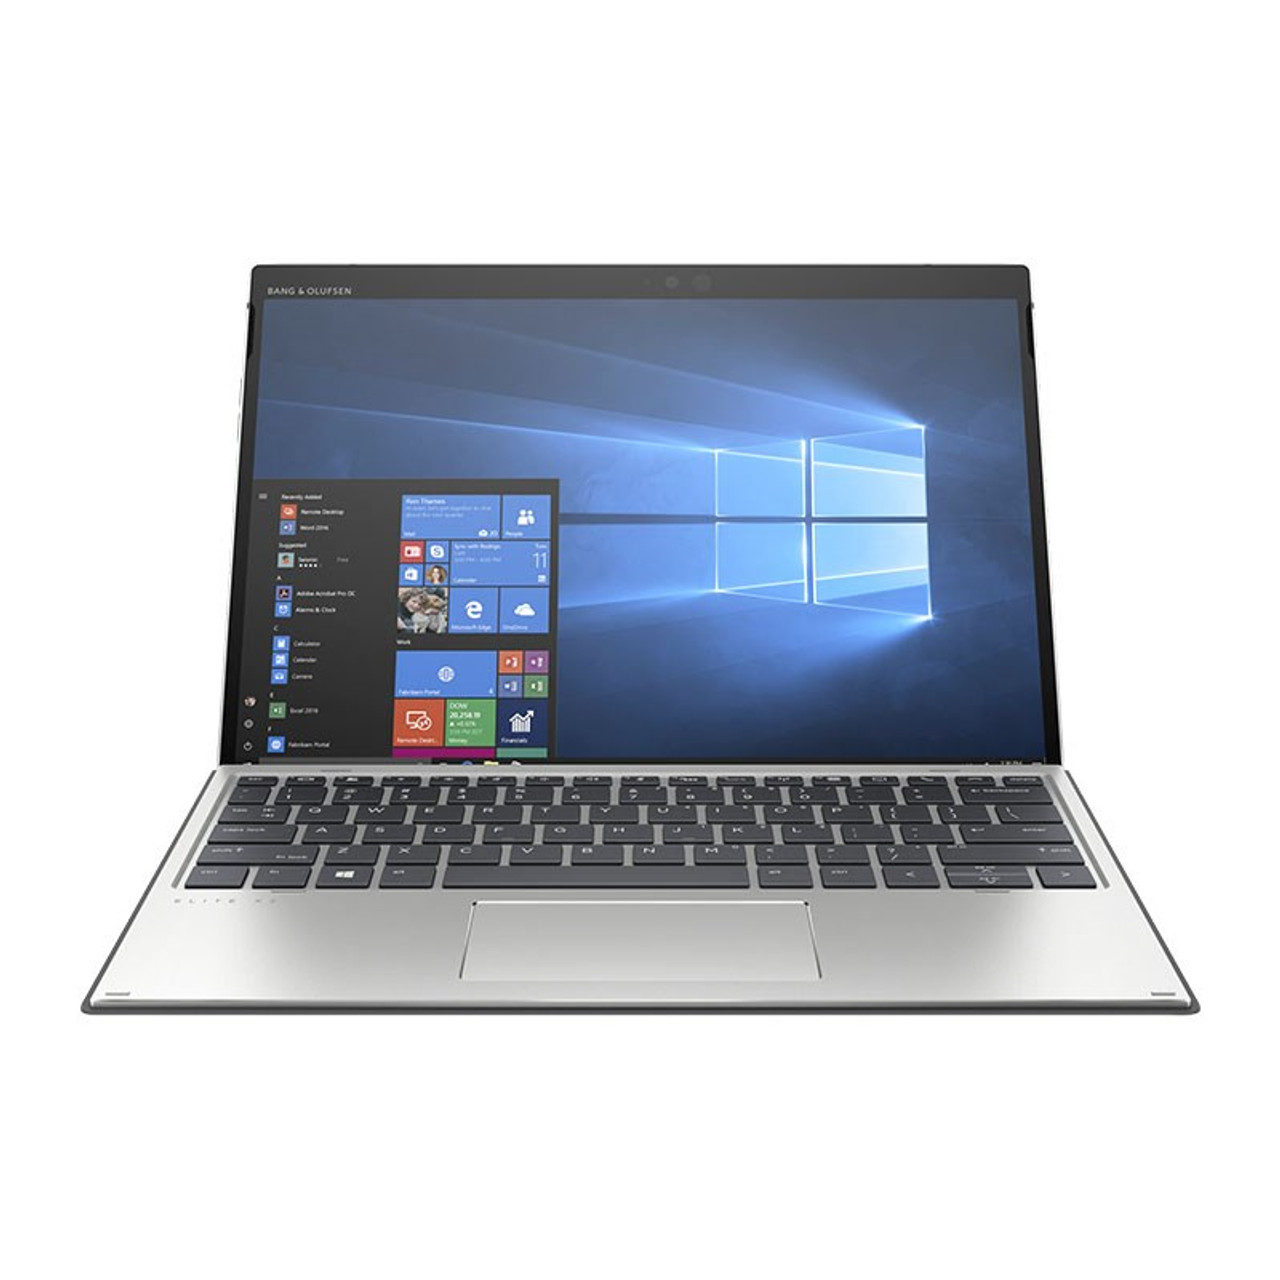 Image for HP Elite x2 G4 13in Tablet i7-8665U 16GB 512GB+32GB W10P Touch - Keyboard CX Computer Superstore